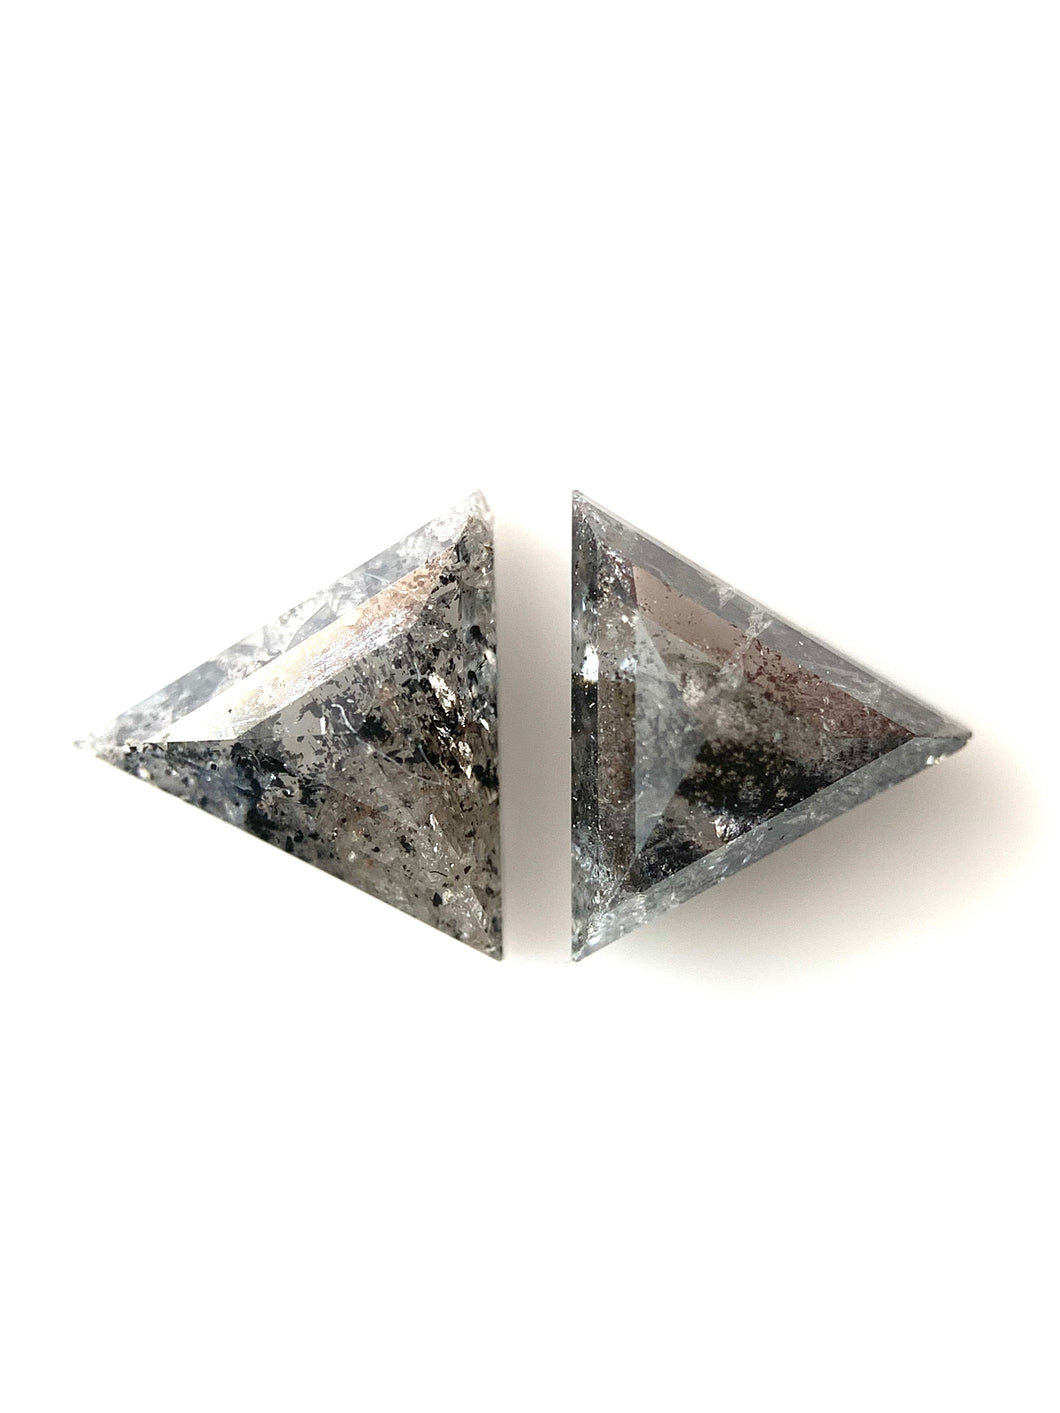 2=.77ct Triangle Cut Salt and Pepper Diamonds